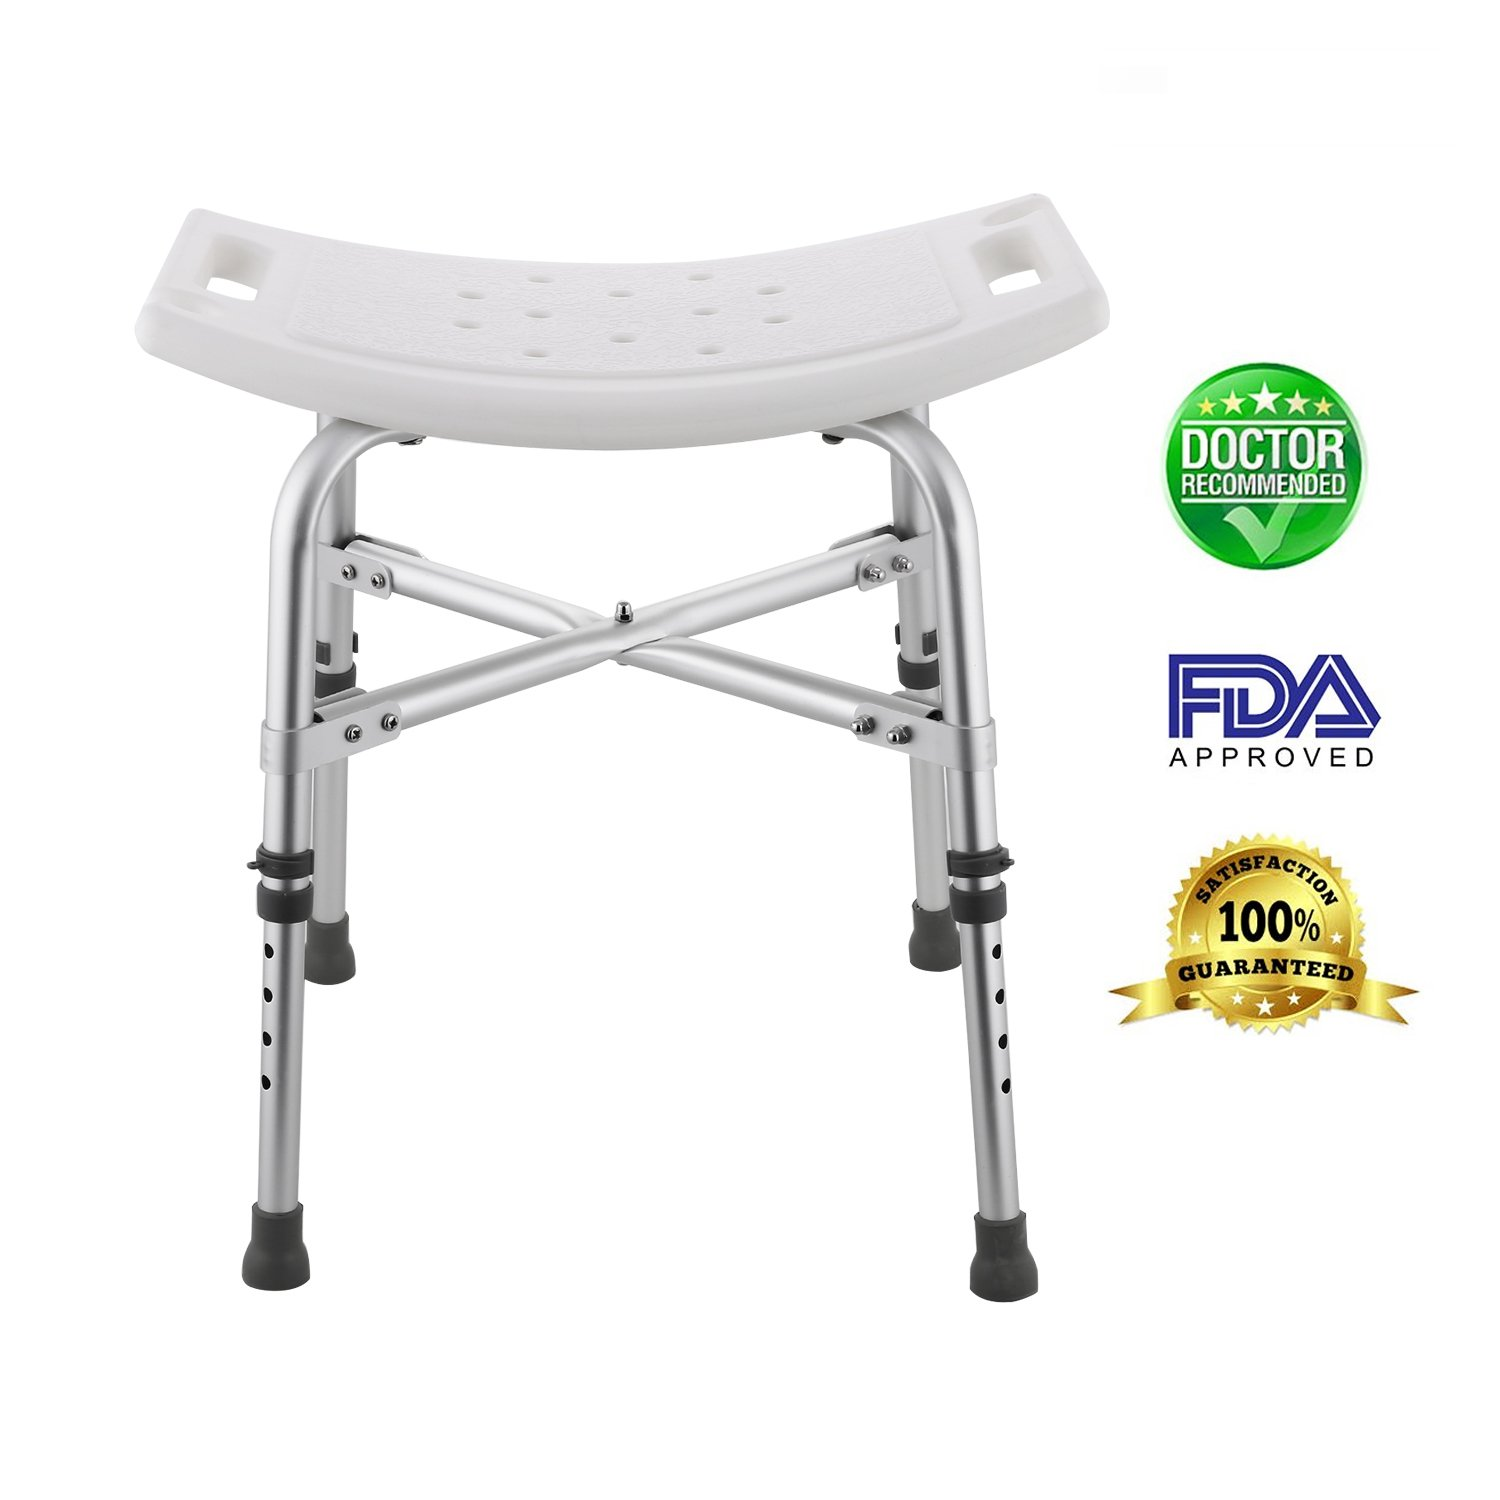 Kaluo Bath Shower Stool Lift Chair for Bathroom Aid Chair, Up to 330lbs Capacity (19.5 x 11.7inch)